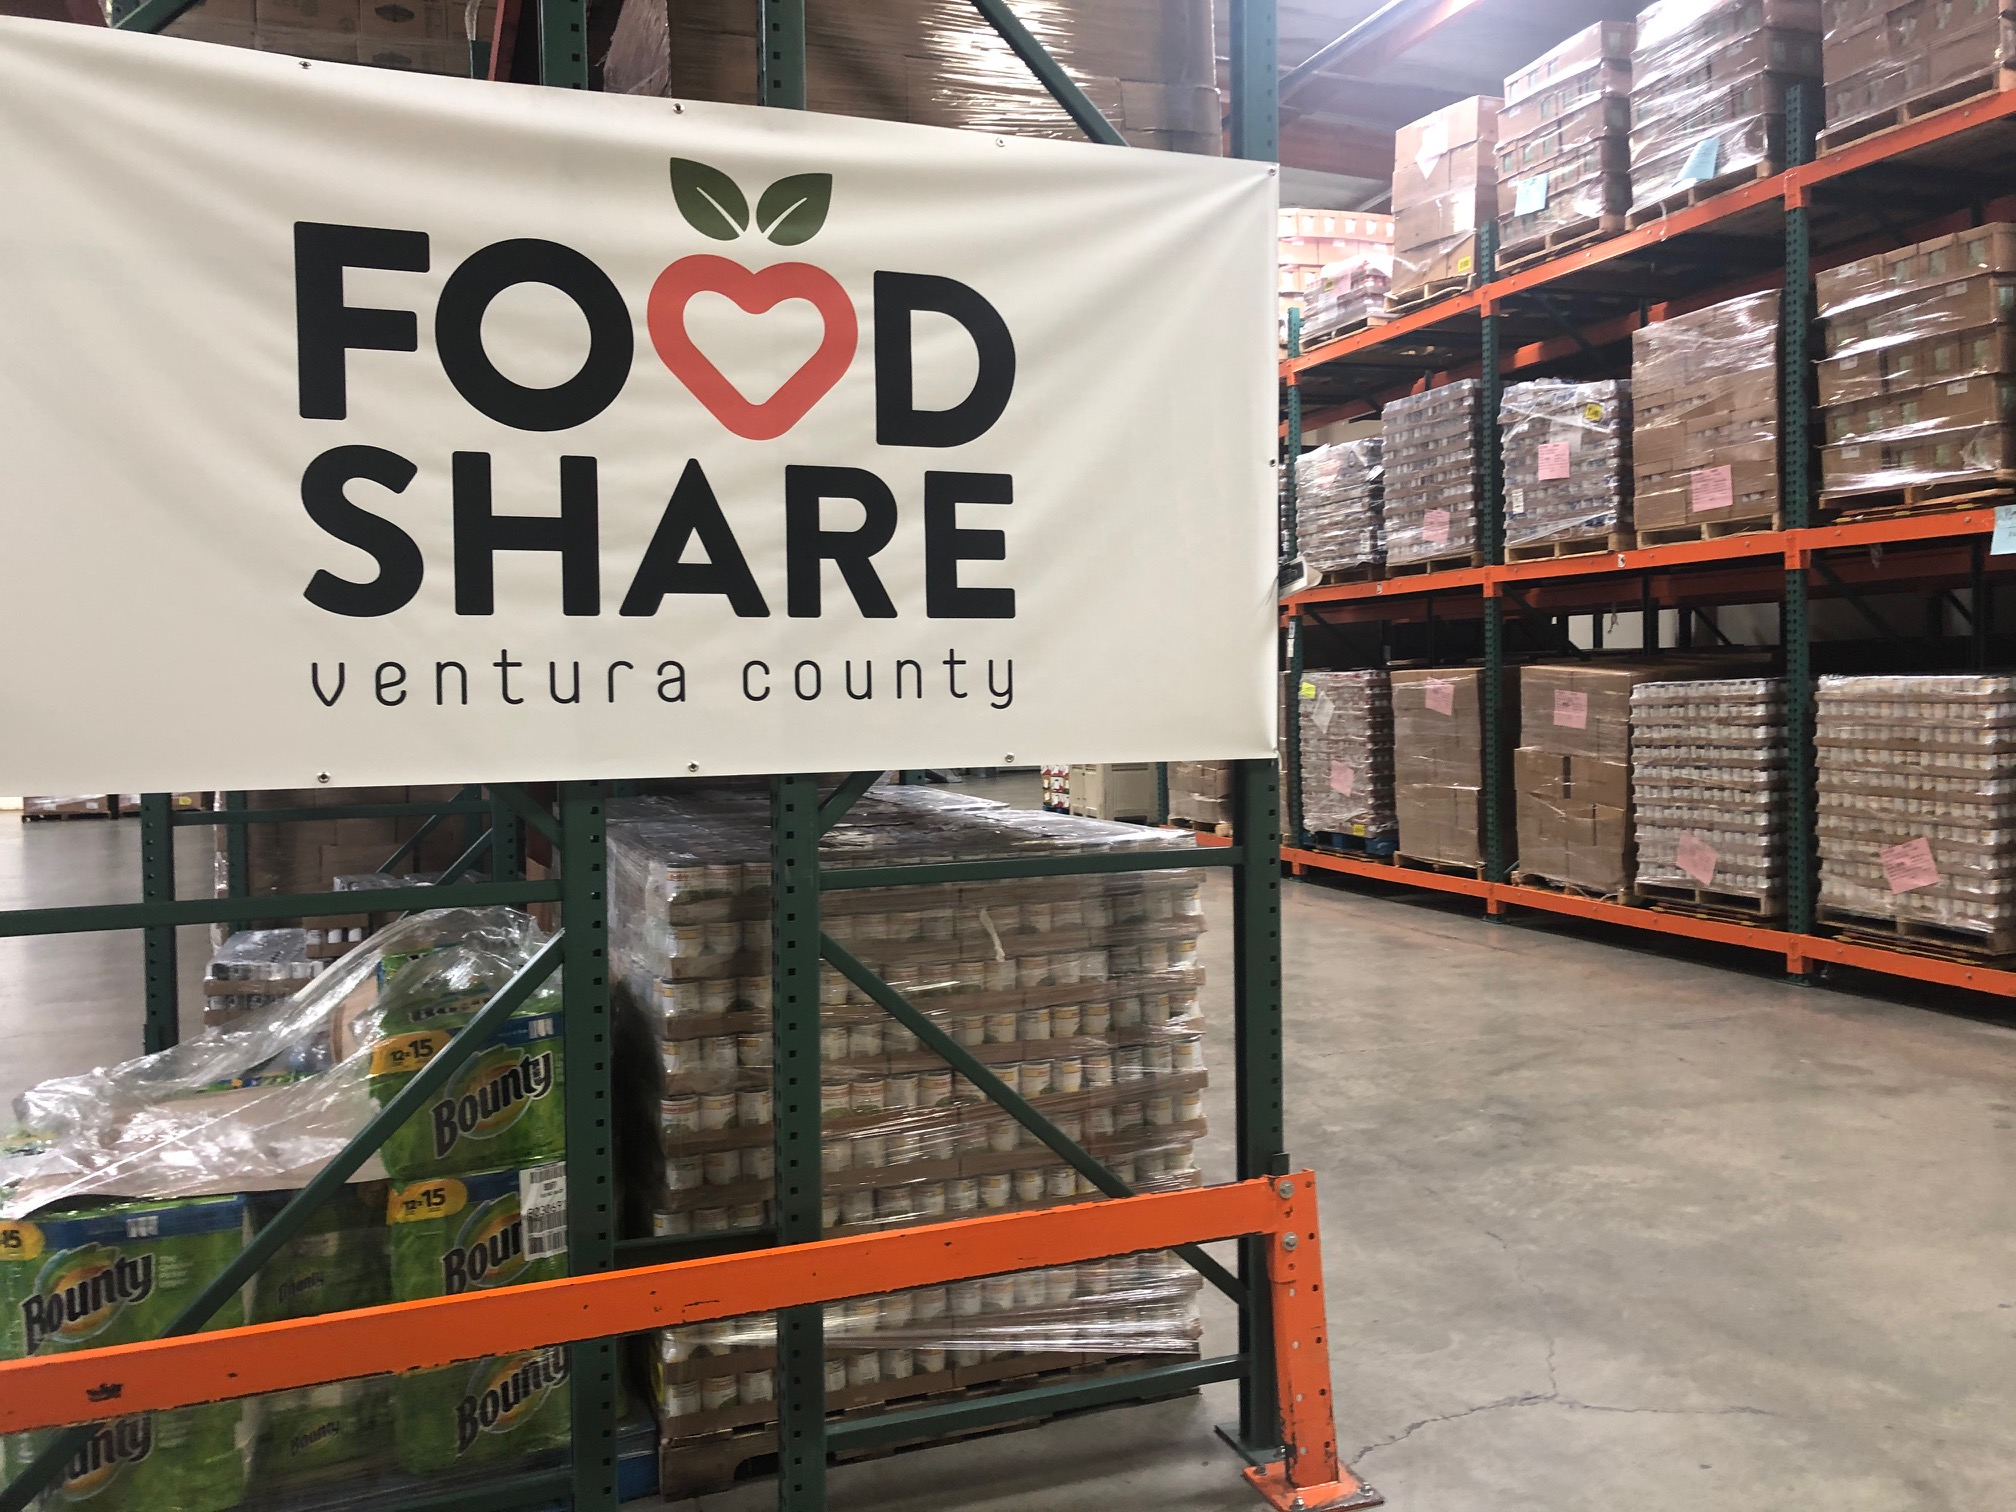 Food Share Ventura County